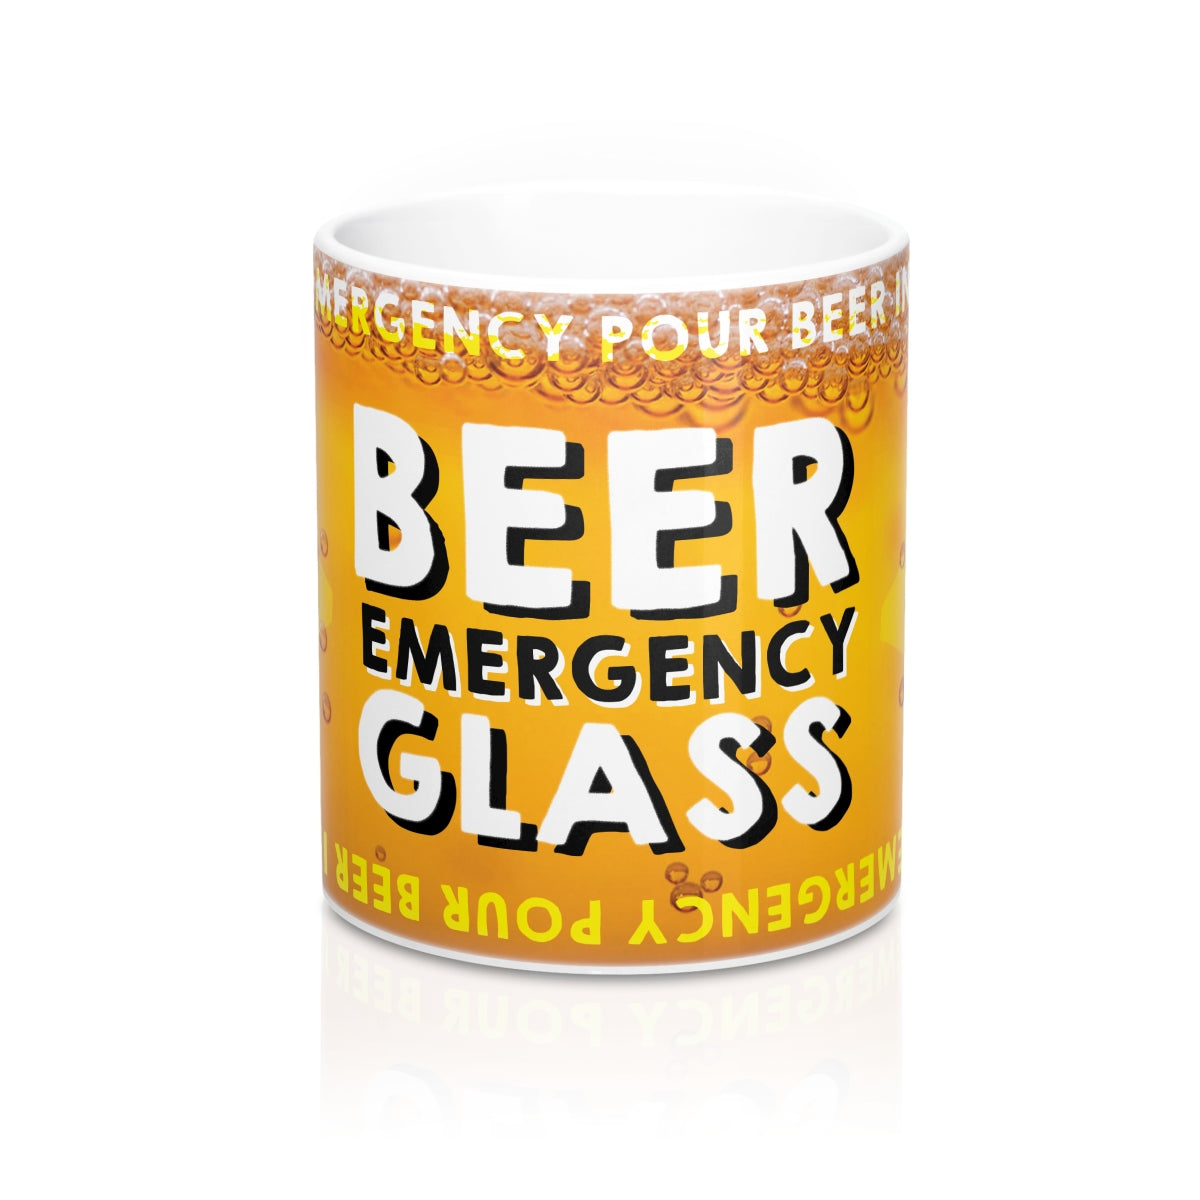 Emergency Beer Glass Mug 11oz